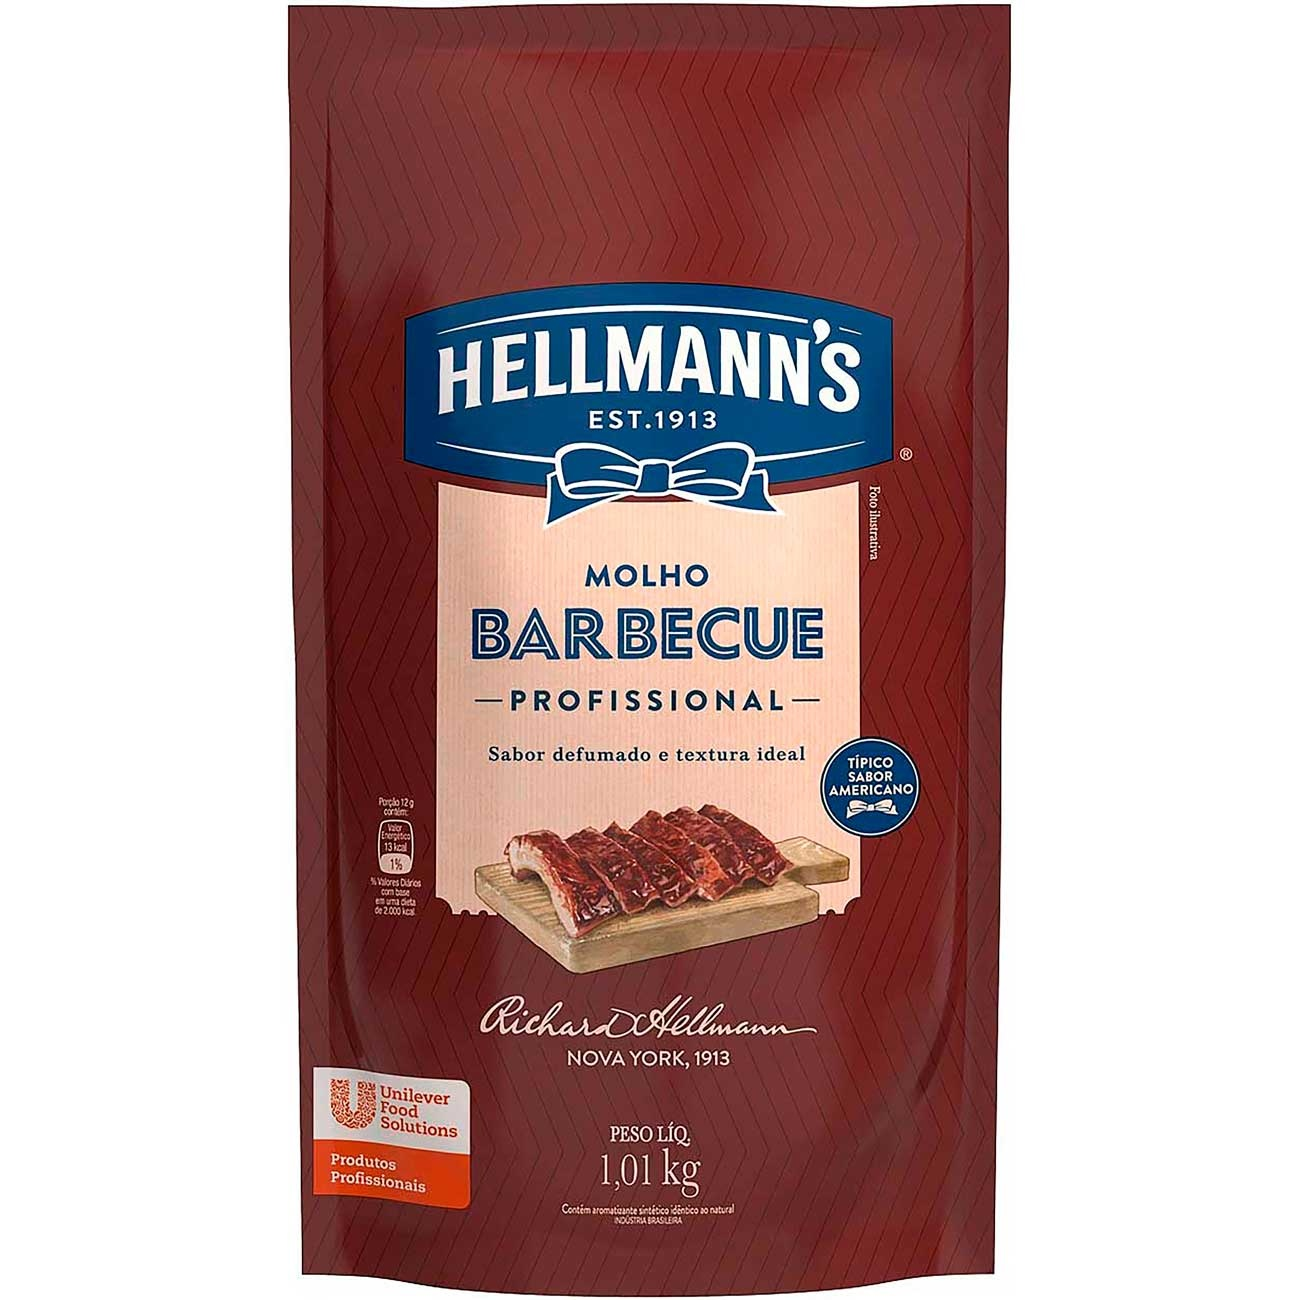 MOLHO BARBECUE HELLMANNS 1,01 KG SACHE